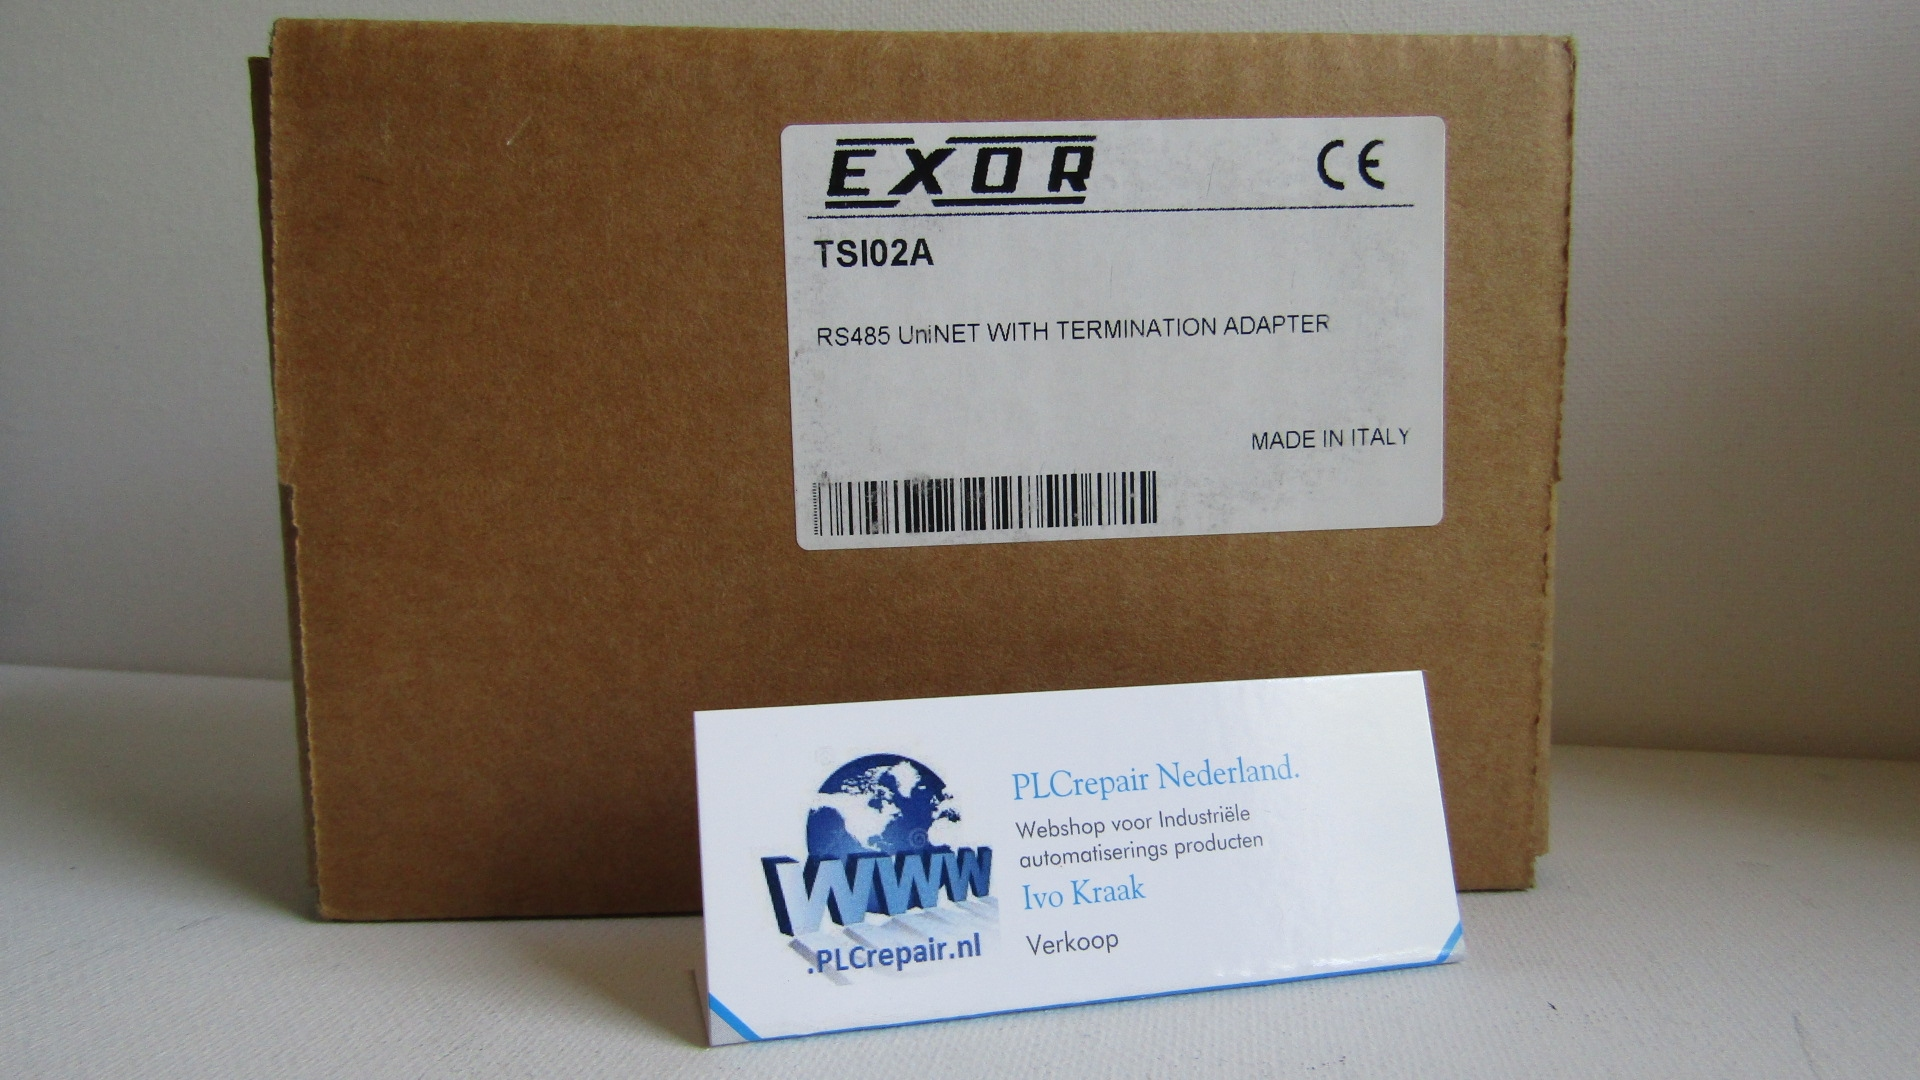 TSI01A  TSI02A Exor Uniop uninet HMI RS485 new in box.